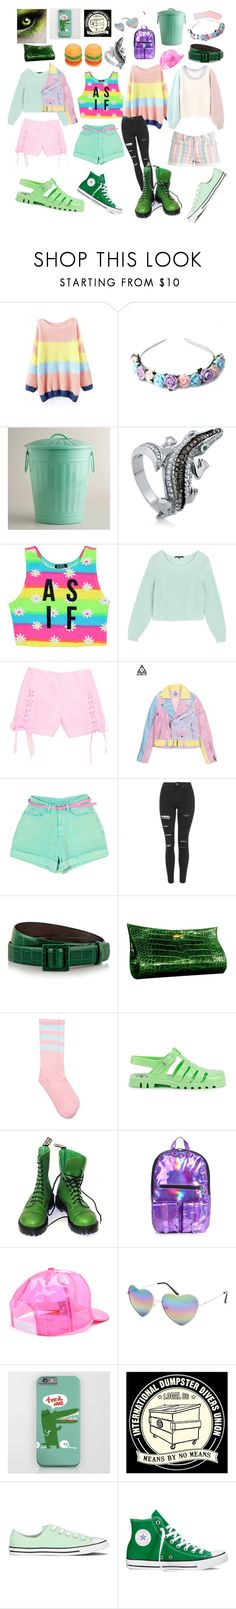 """Undertale: Bratty"" by cartoonvillian ❤ liked on Polyvore featuring Zara Taylor, Cost Plus World Market, BERRICLE, Dimepiece, TIBI, Topshop, Oscar de la Renta, Lautrec, JuJu and Vegetarian Shoes"